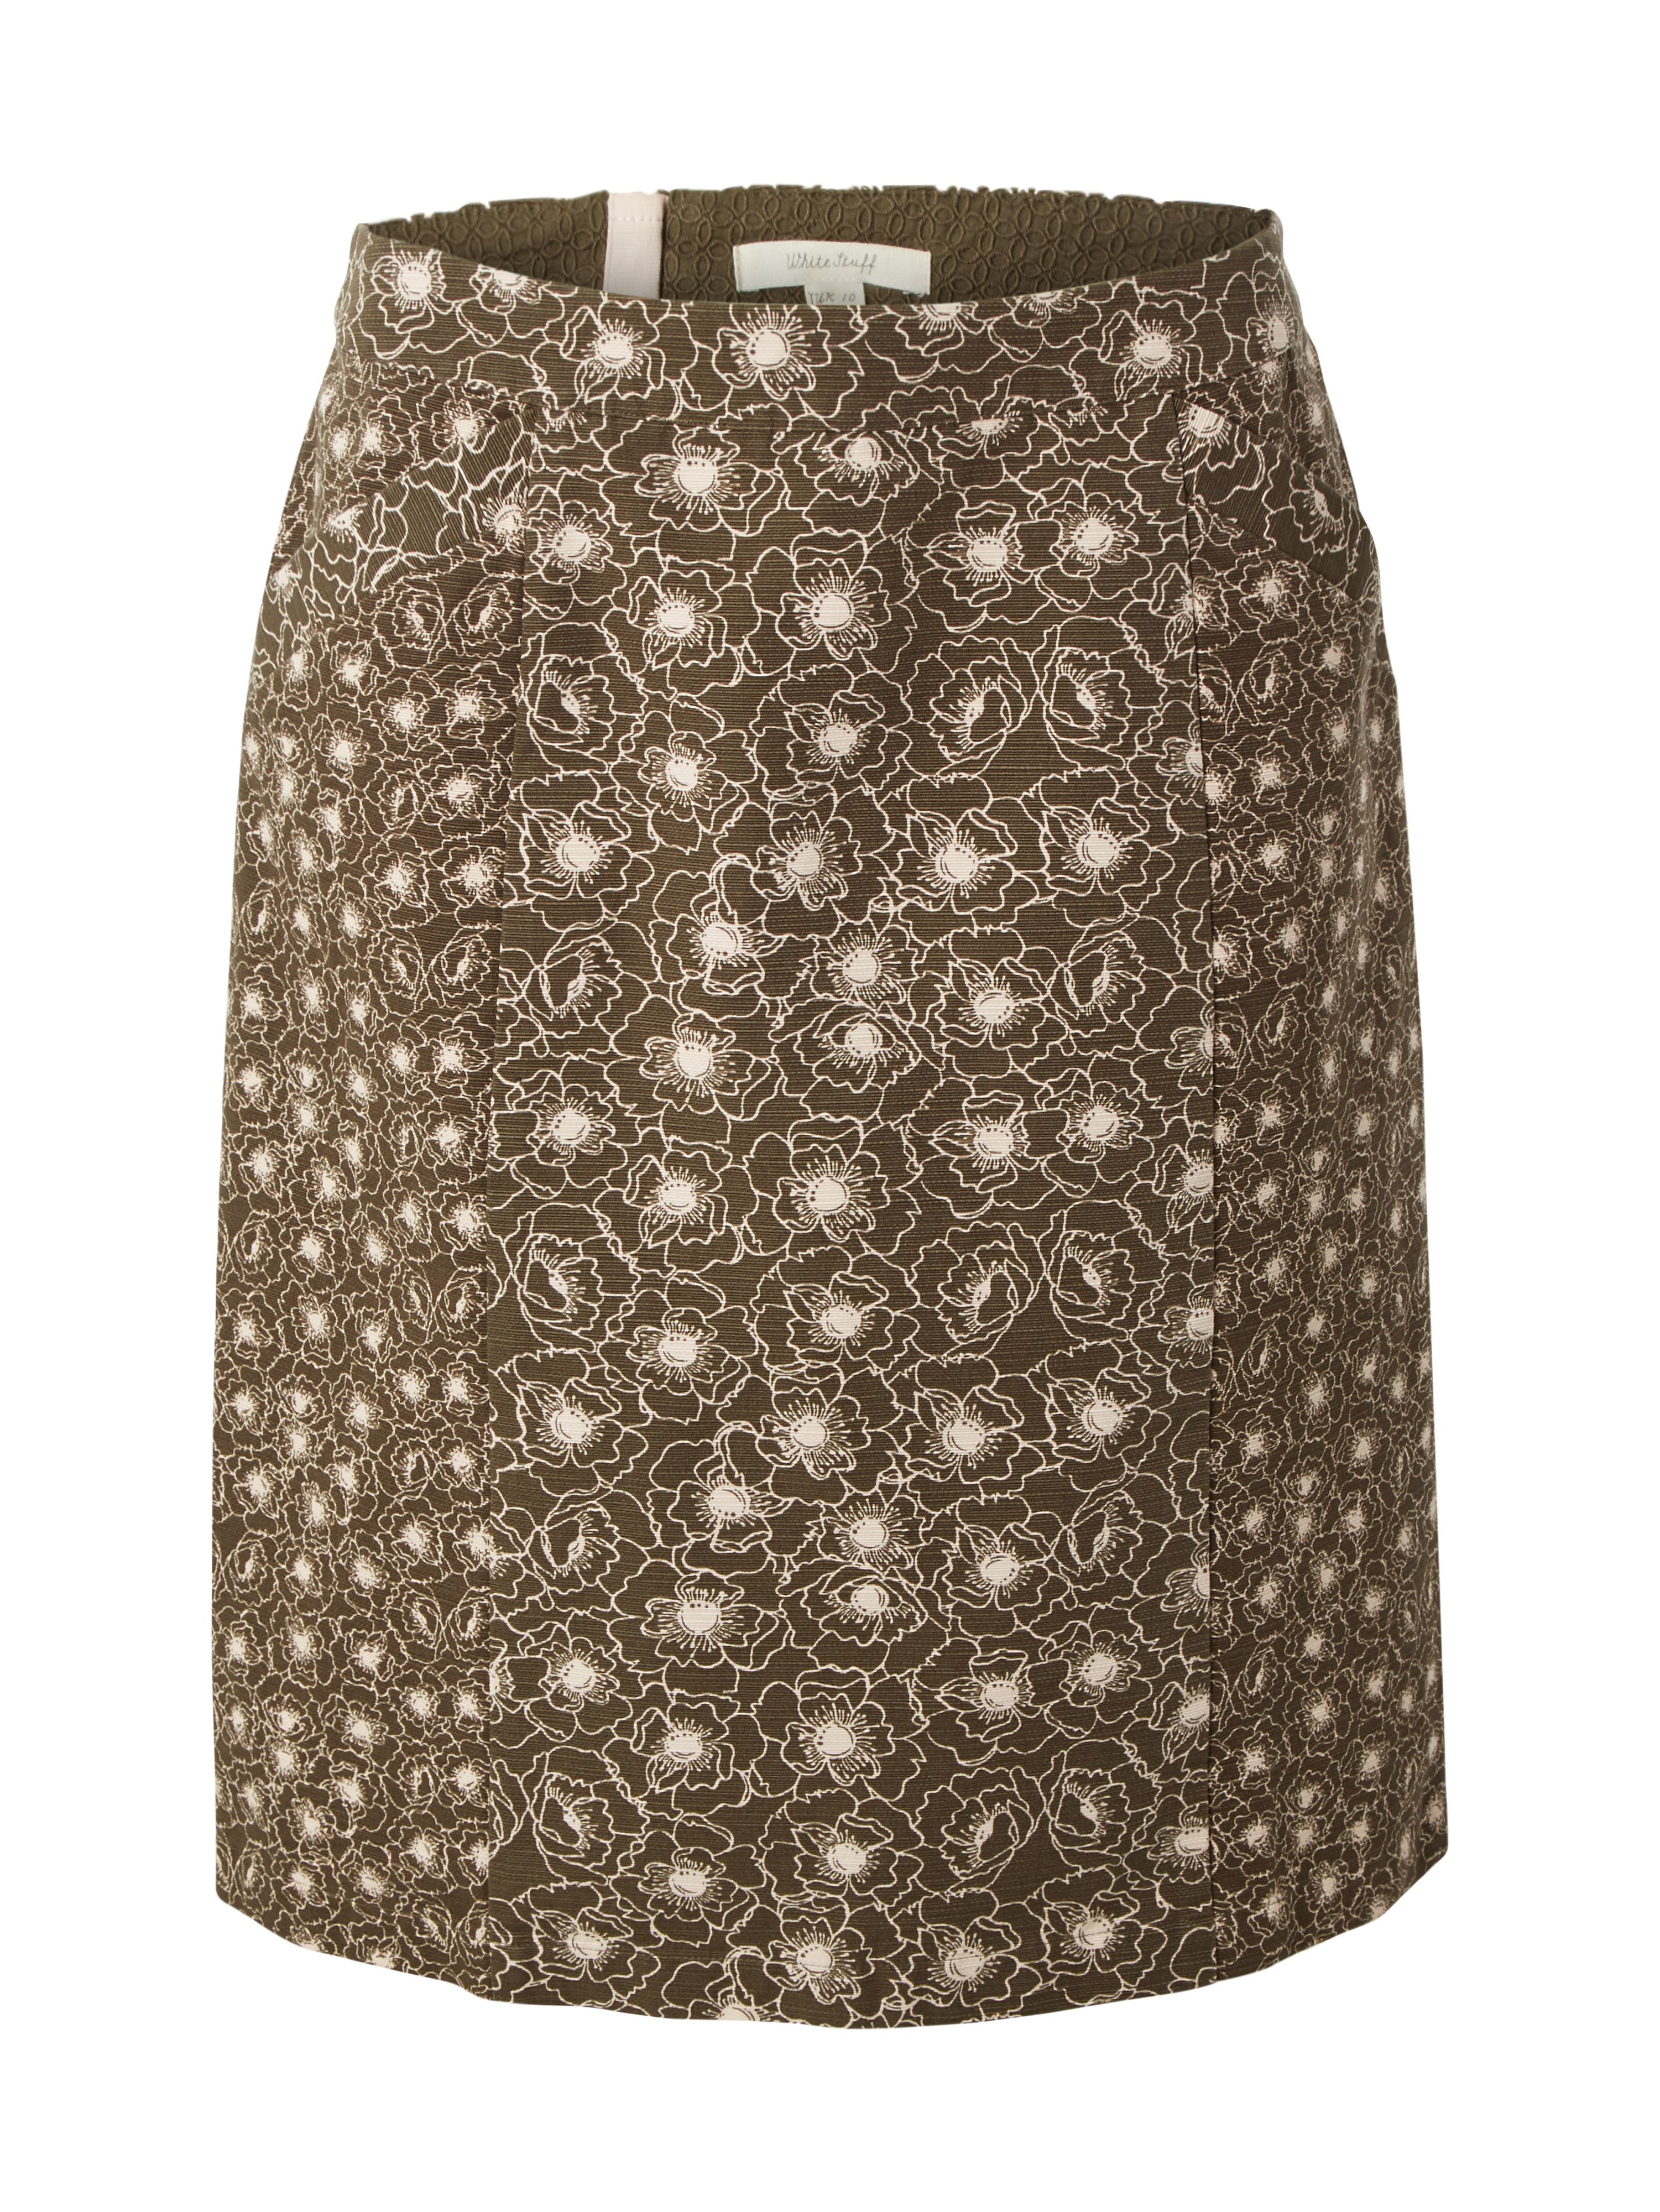 White Stuff Poppy Seed Skirt, Green